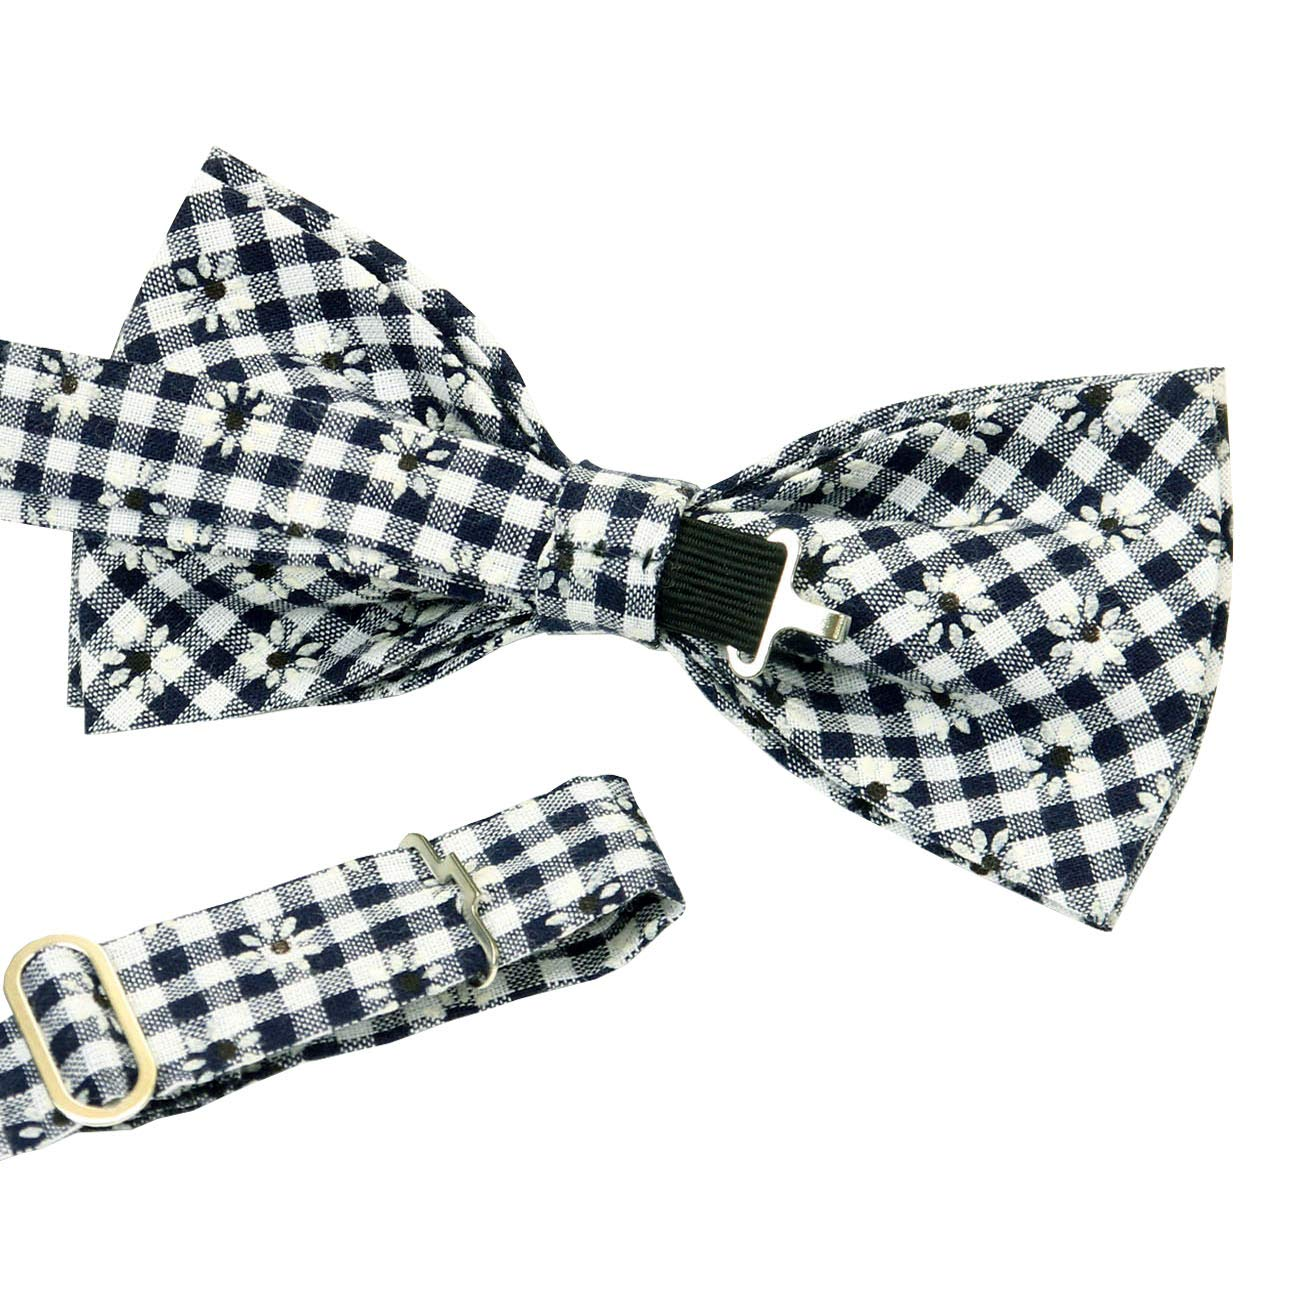 ST34 Brand New Navy blue and White Plaid Cotton Check Bow ties for Men B1615